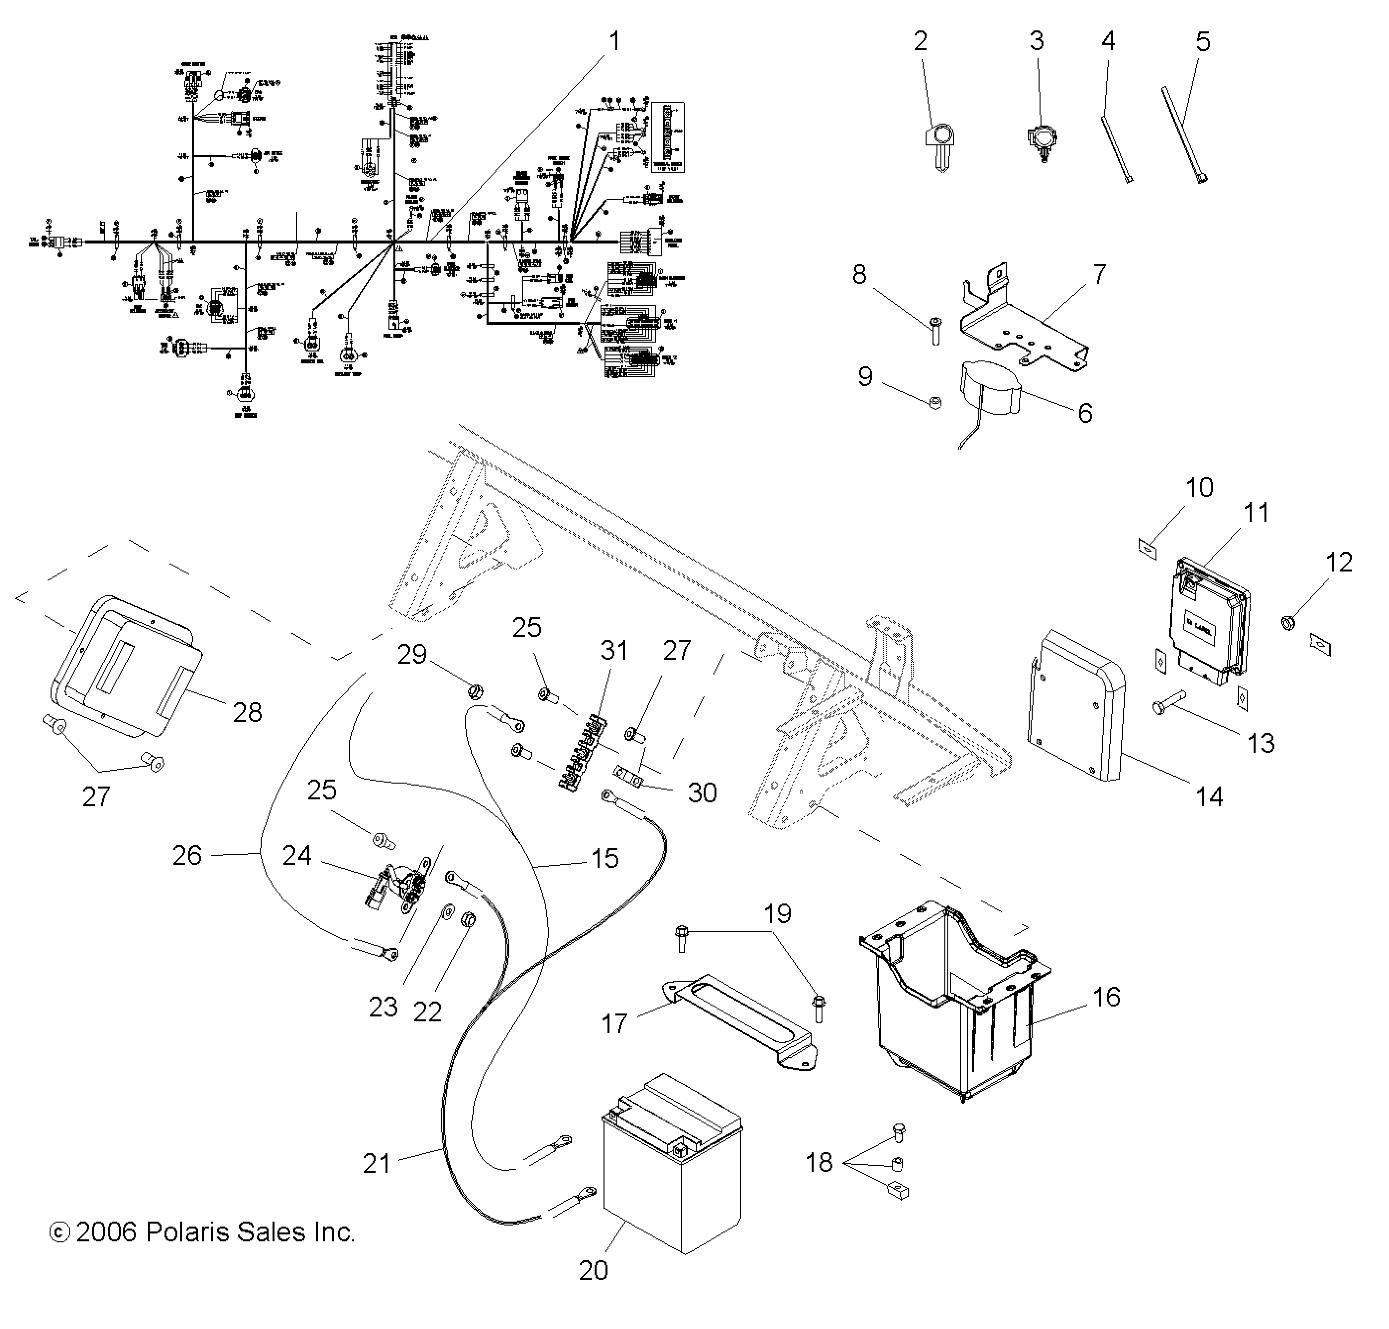 Diagram Yamaha Rhino 700 Efi Wiring Diagram Full Version